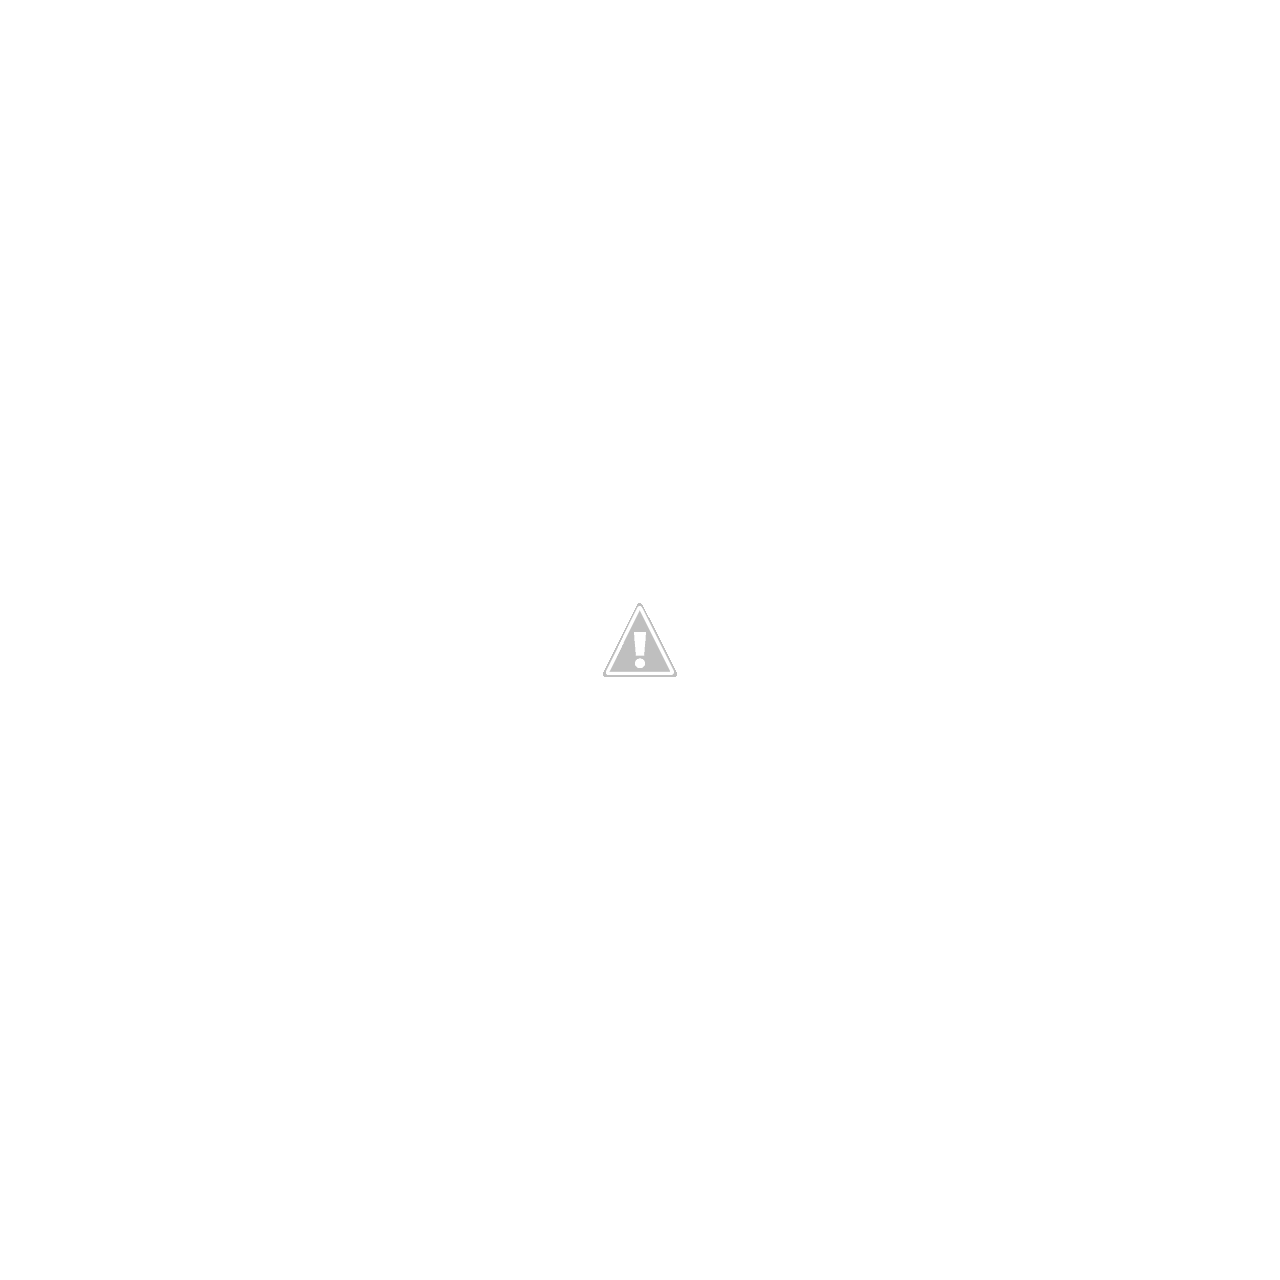 LED TV Repair and Service Delhi - Aimax Electronics - Television